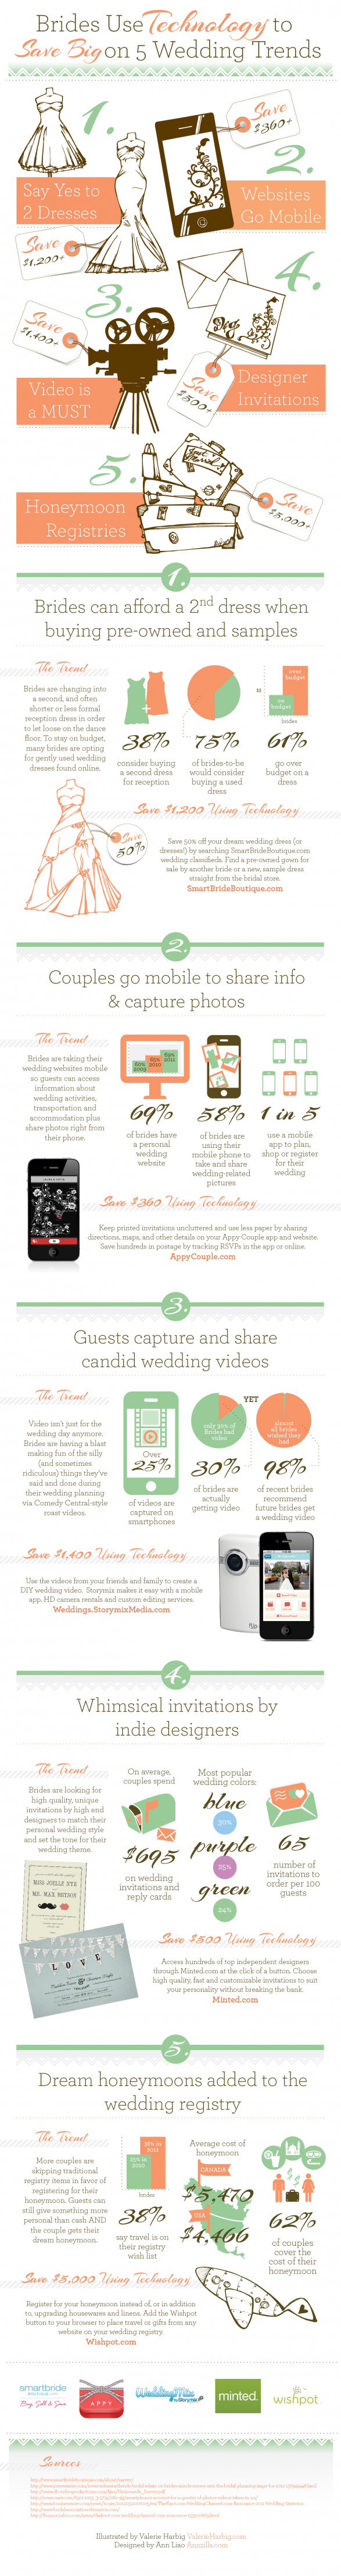 How to Save Over $7,000 on Your Wedding Using Technology